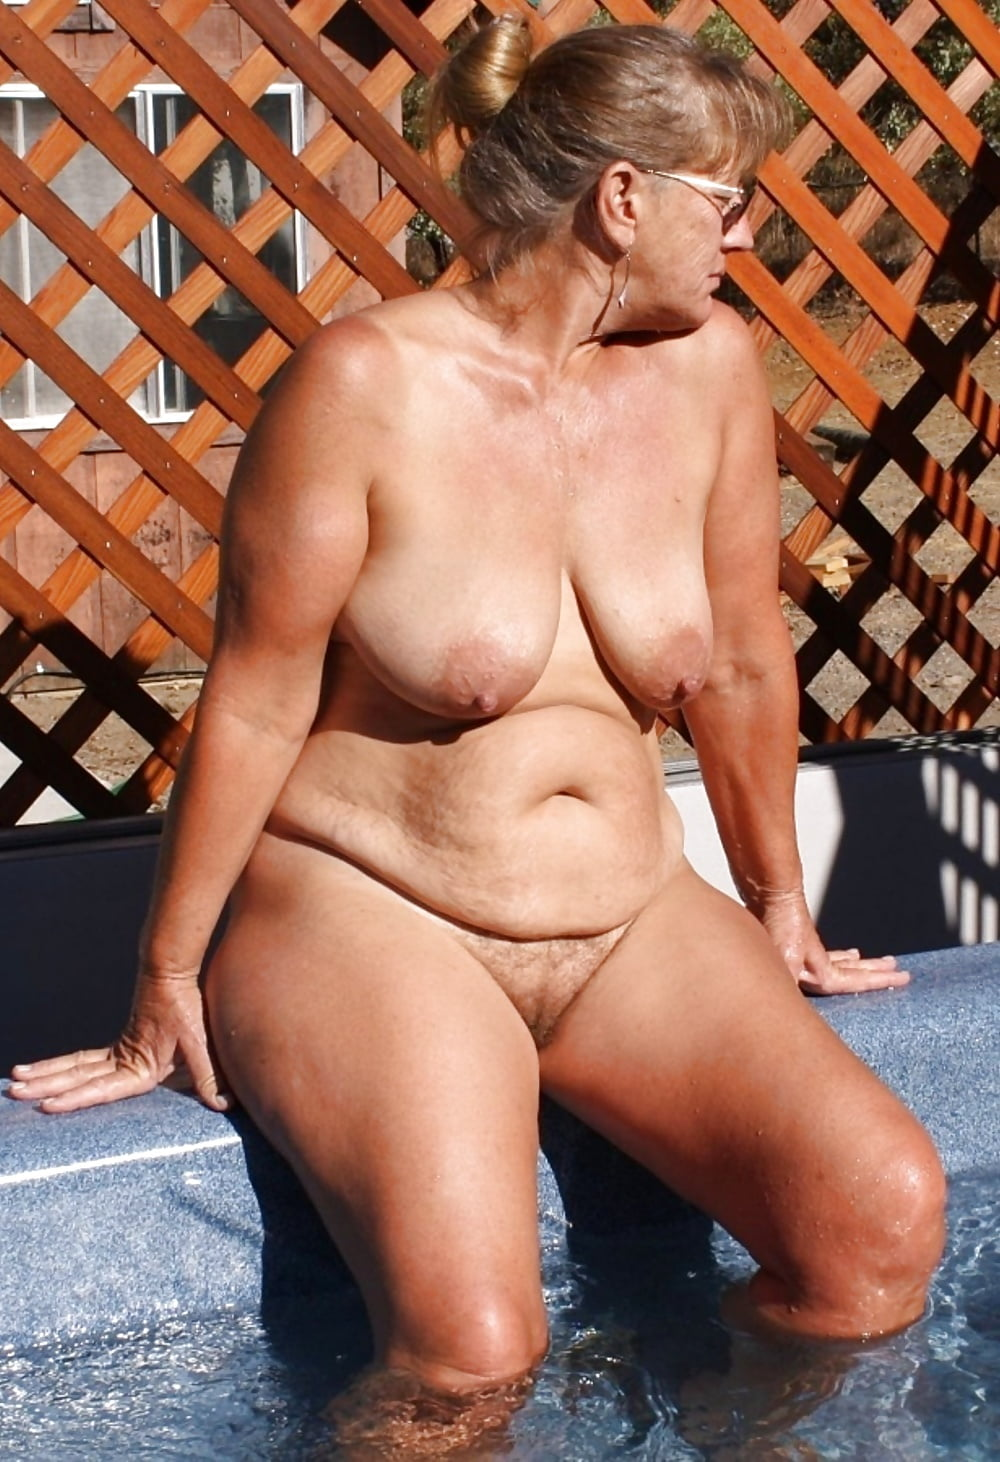 Pretty nude grandmothers, cum shots sluts